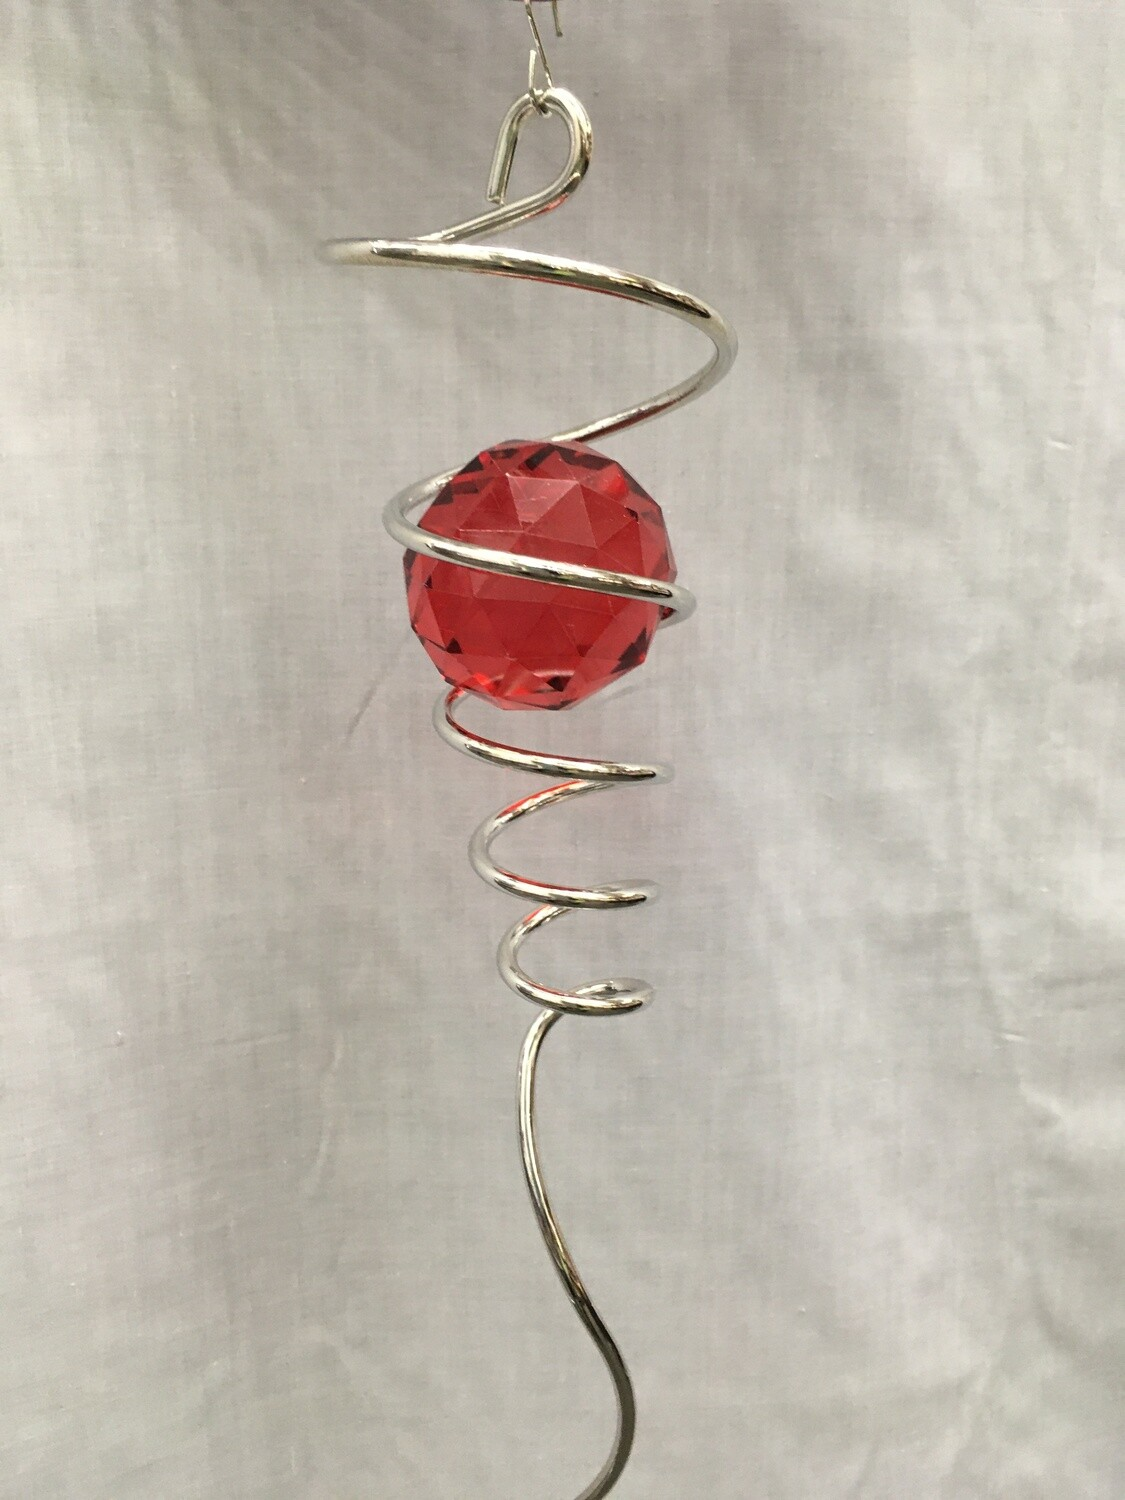 Spiral Tail with Red crystal - 10 inch